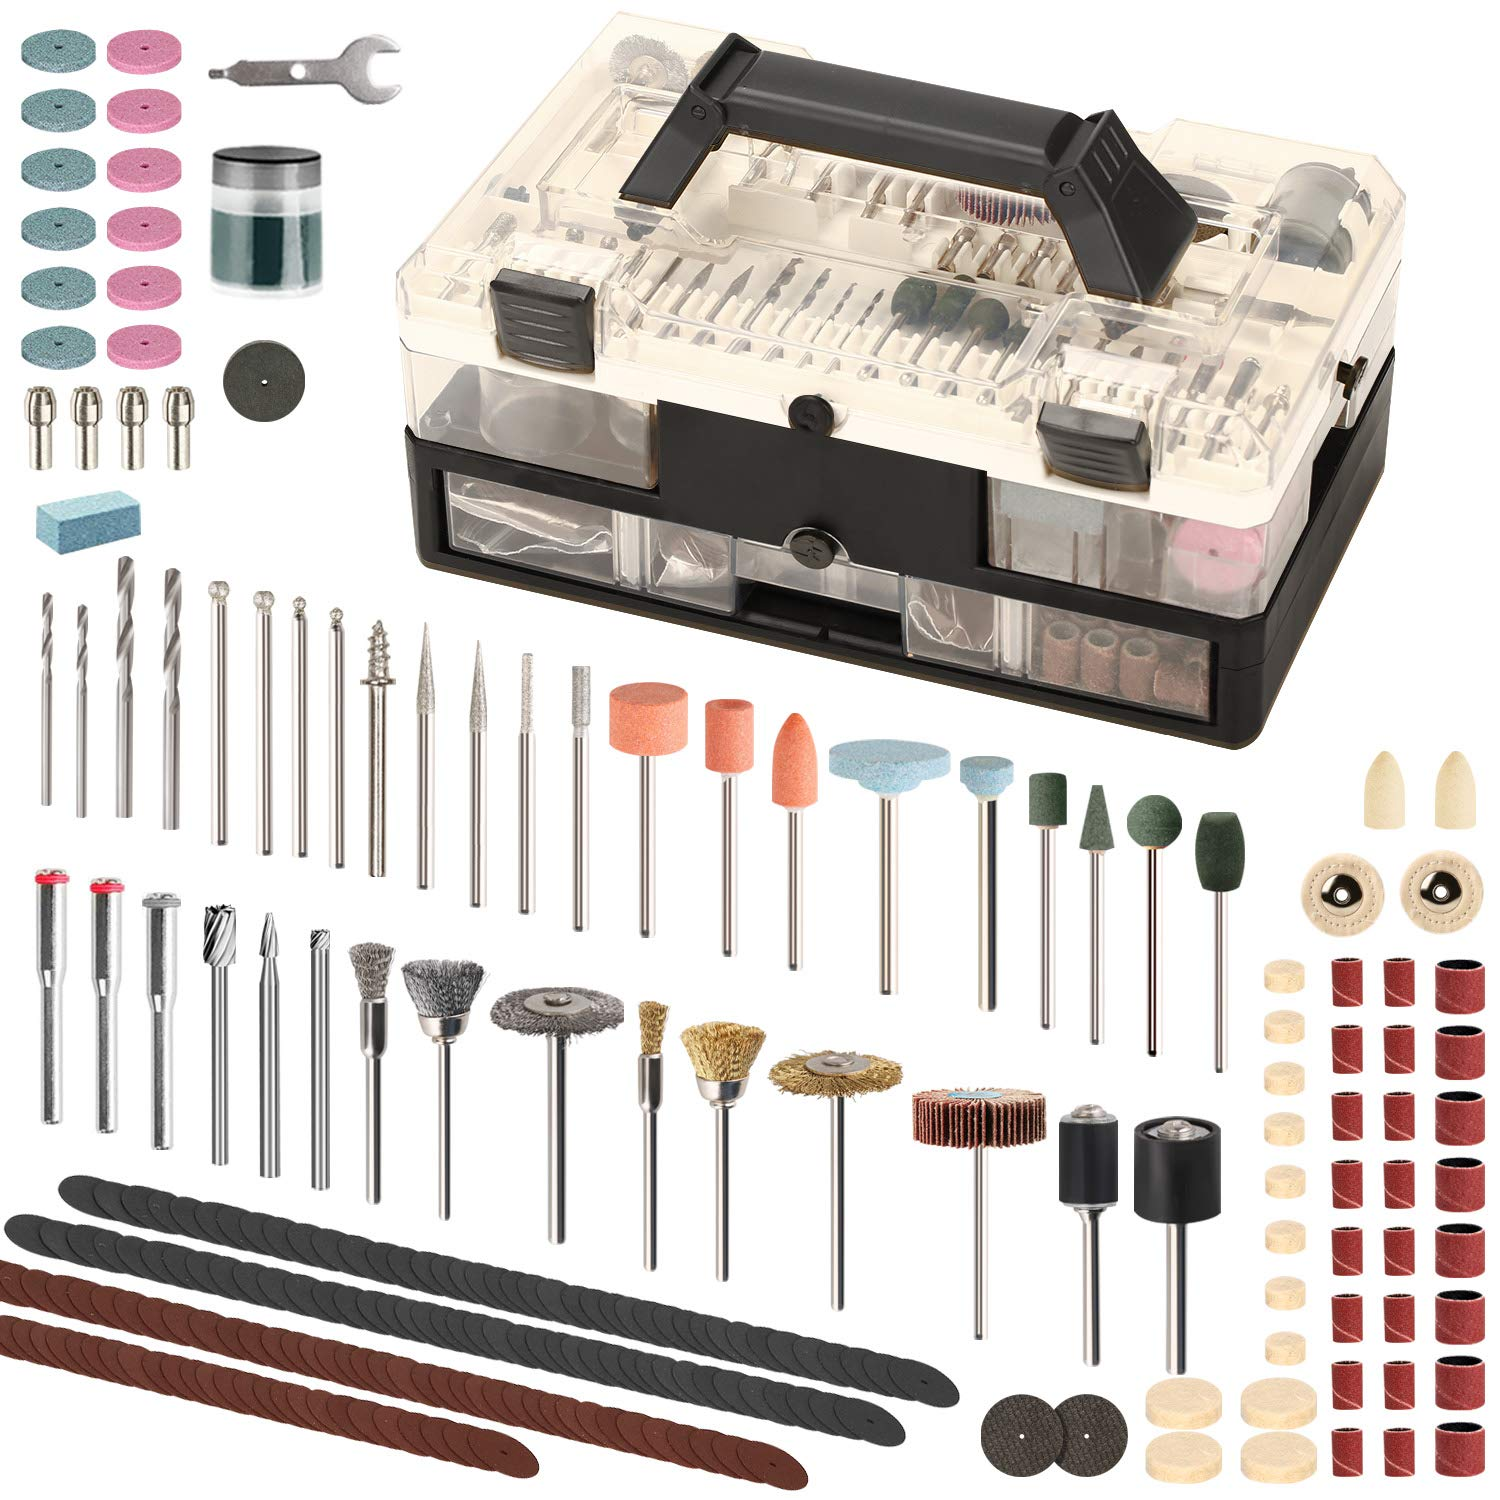 """SPTA Rotary Tool Accessories Kit, 349Pcs Grinding Polishing Drilling Kits, 1/8"""" Shank Electric Grinder Universal Fitment for Easy Cutting, Grinding, Sanding, Sharpening, Carving & Polishing"""